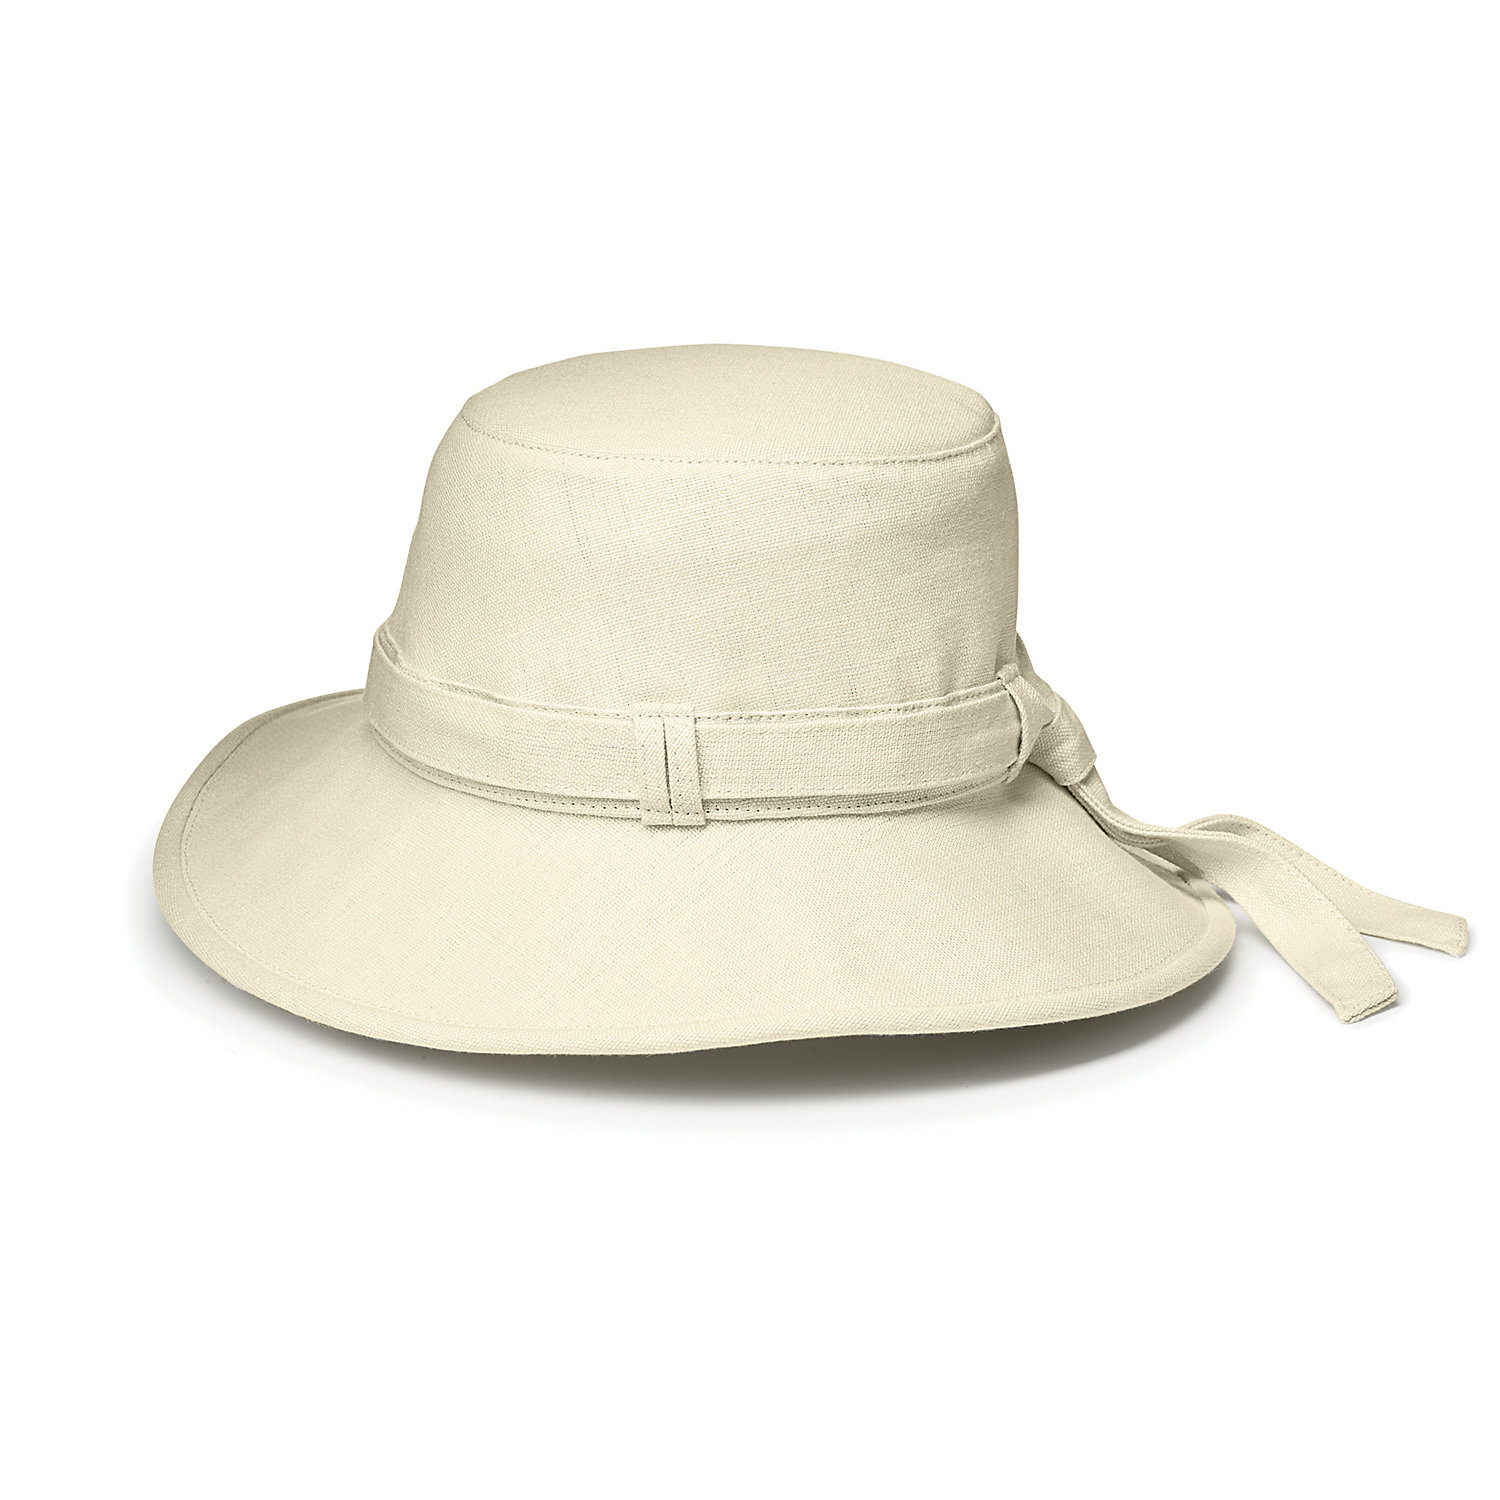 9ea328f1b42 Tilley Women s Hemp Medium Brim Hat - Moosejaw